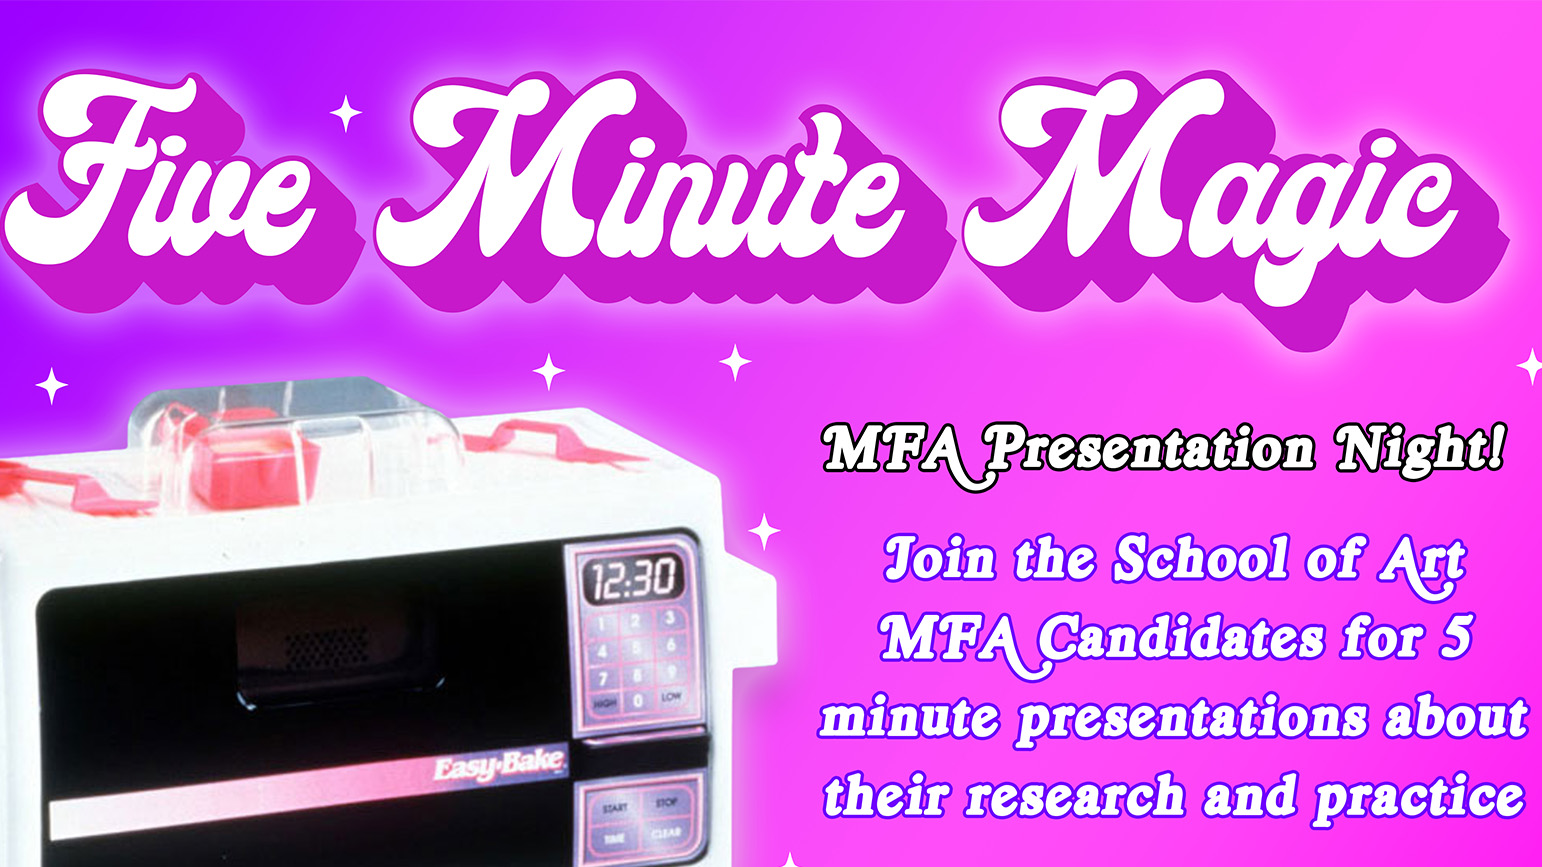 """Image of an Easy Bake Oven with the words """"Five Minute Magic"""""""